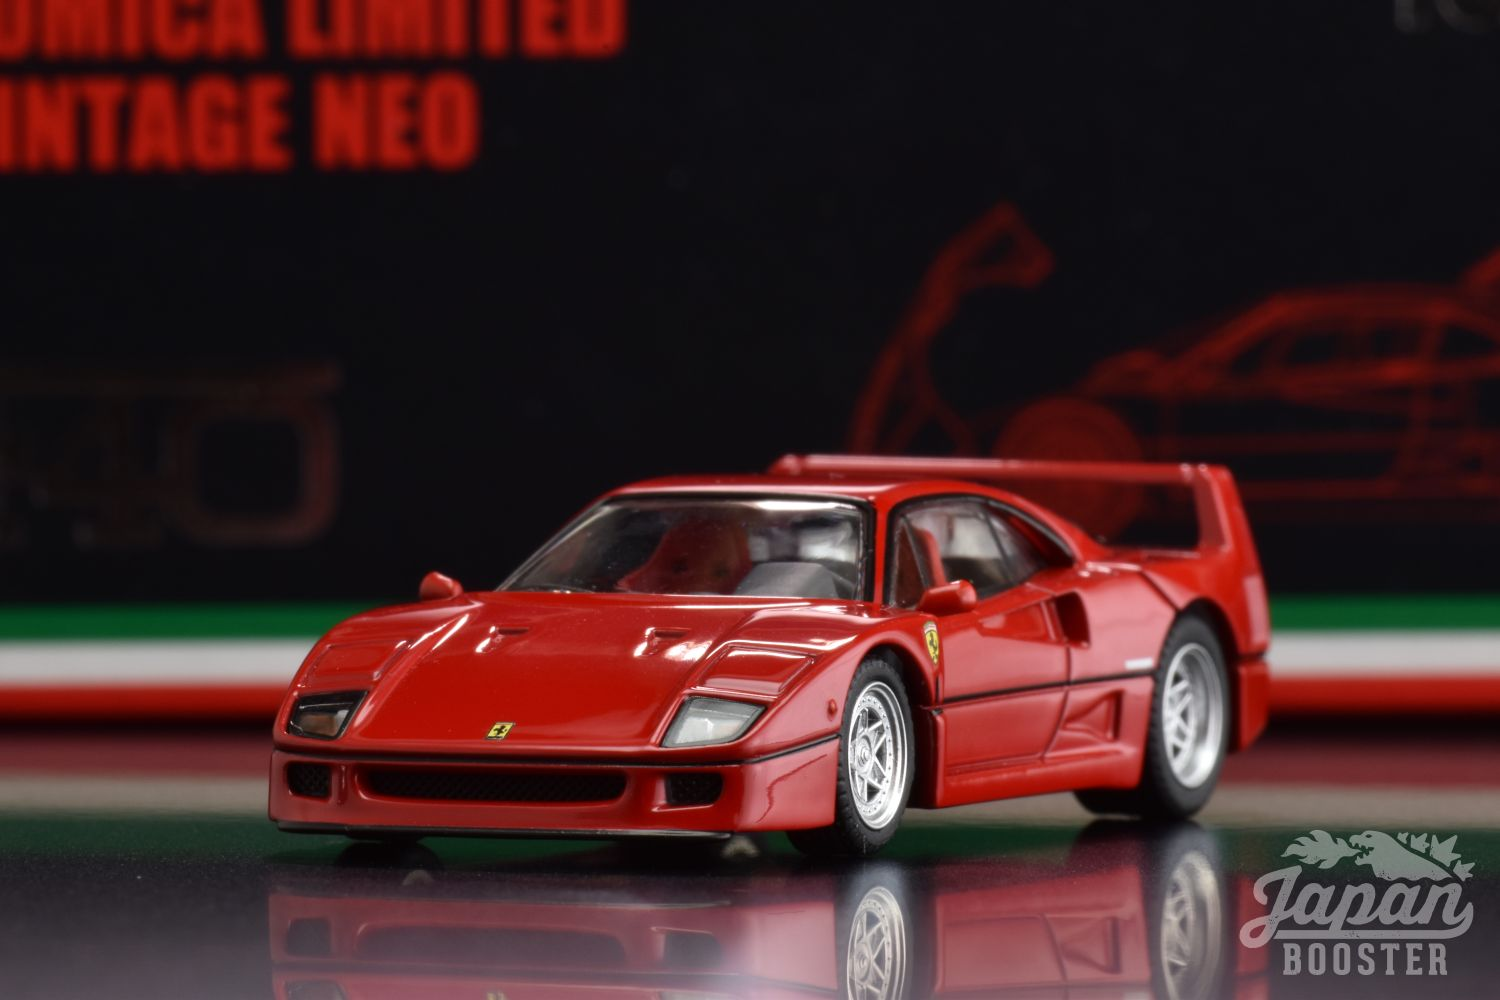 LV-F40 RED